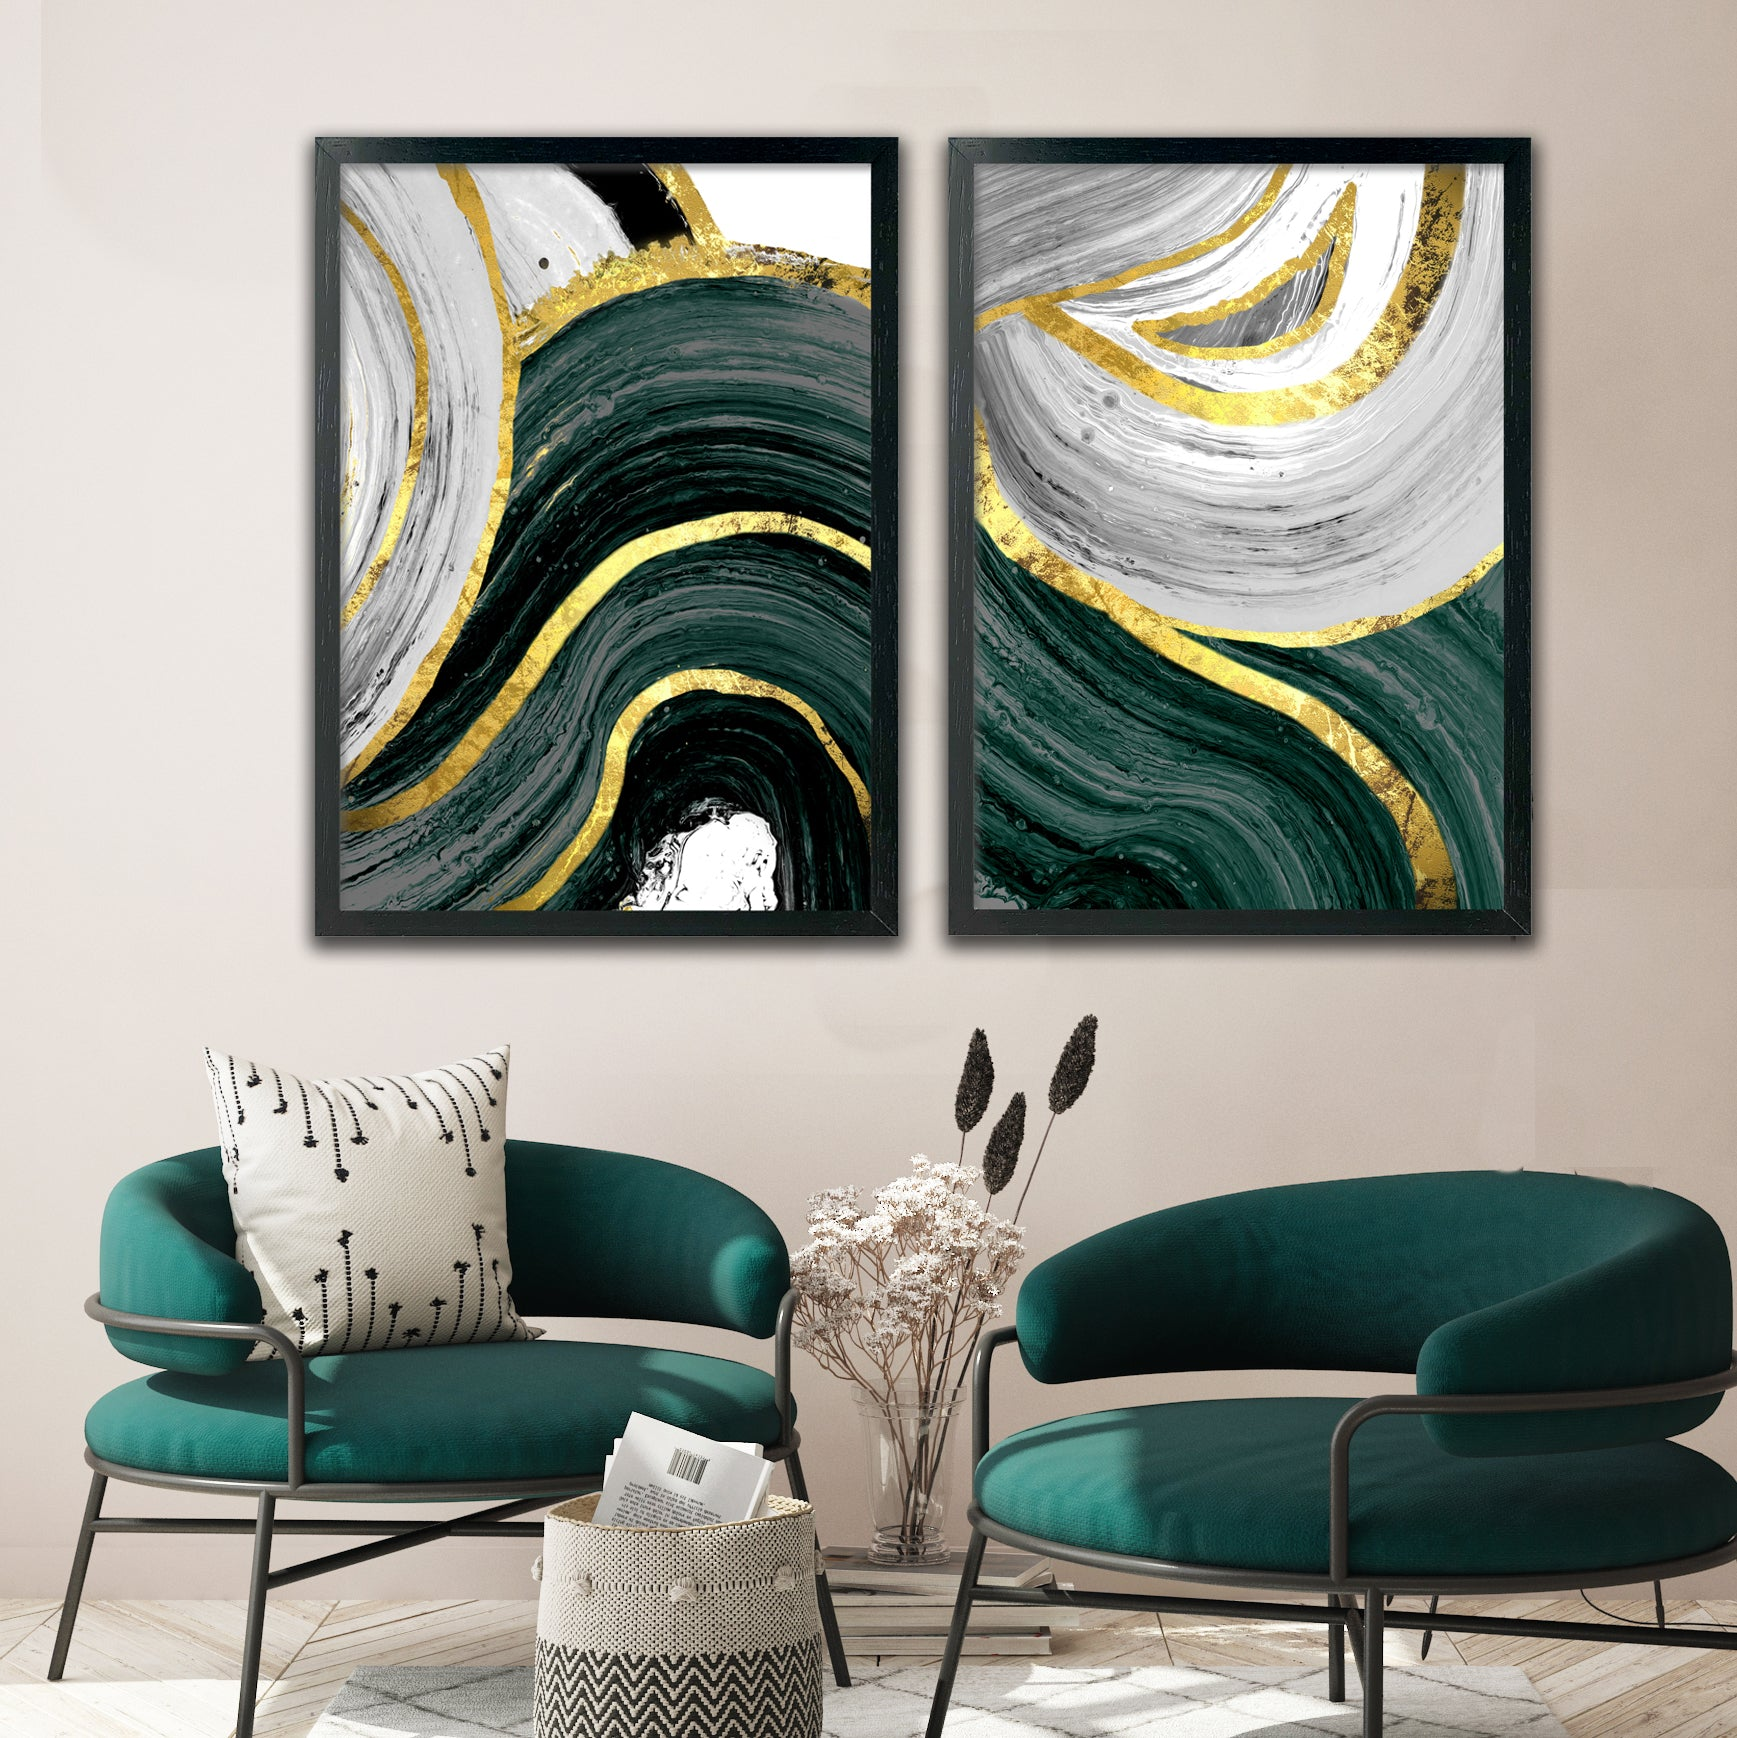 EMERALD & GOLD GALLERY WALL